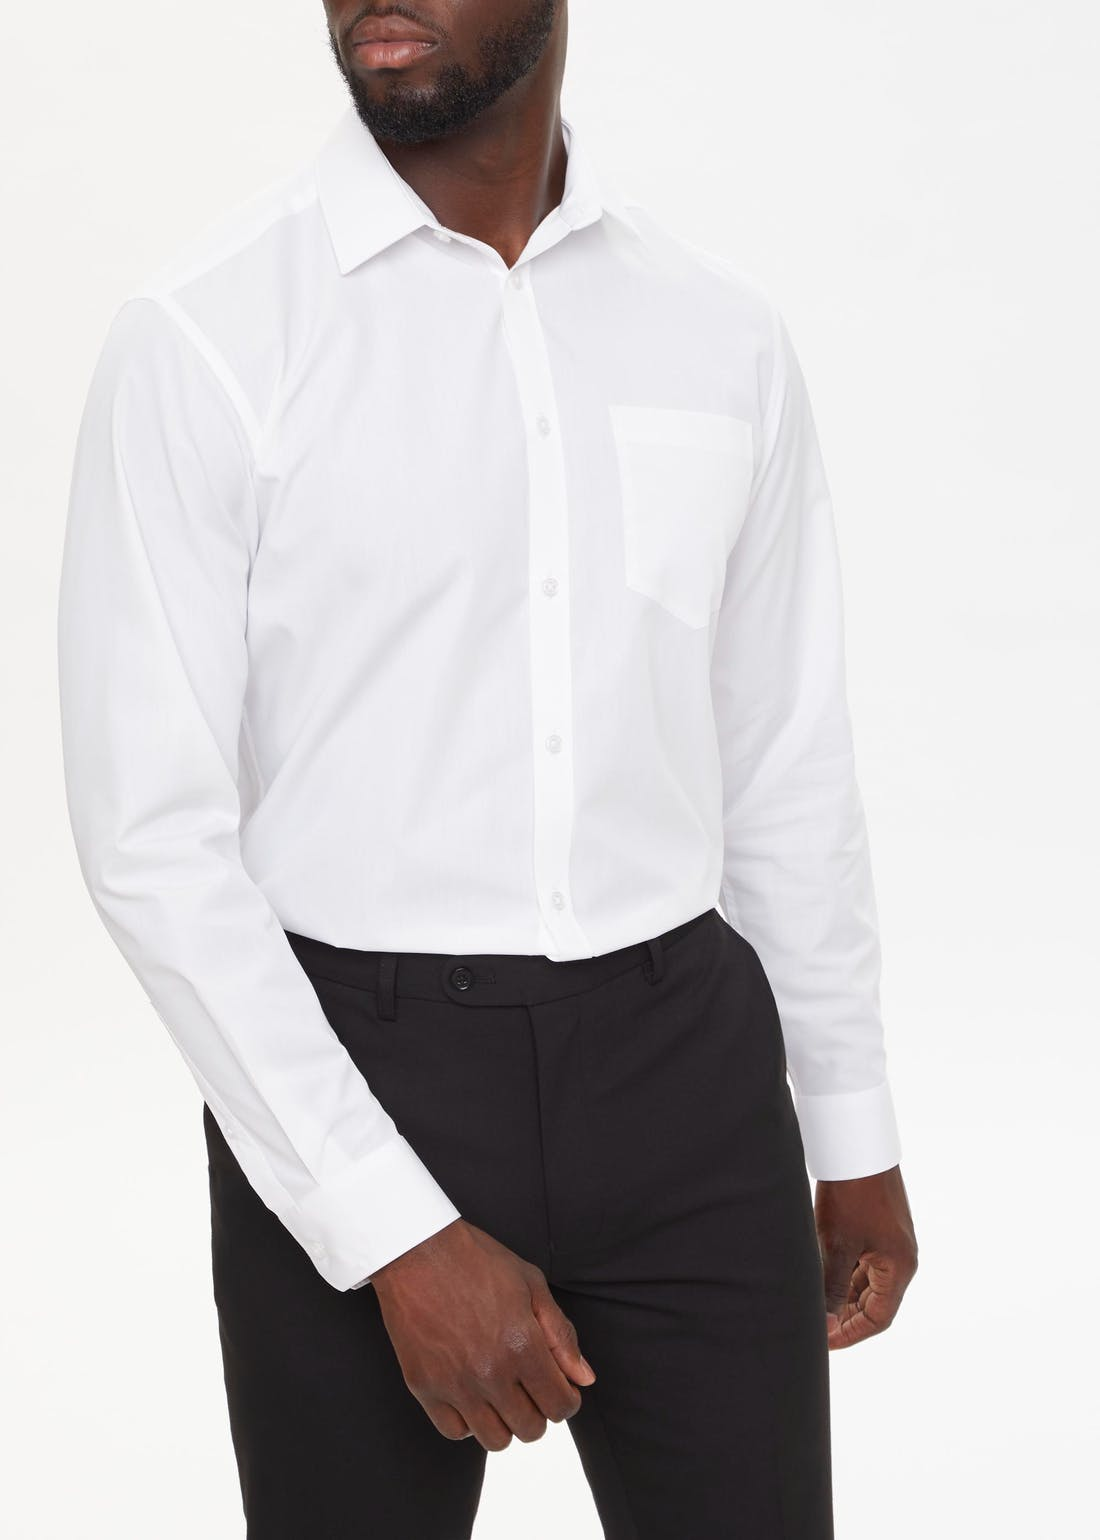 Taylor & Wright Regular Fit Long Sleeve Shirt